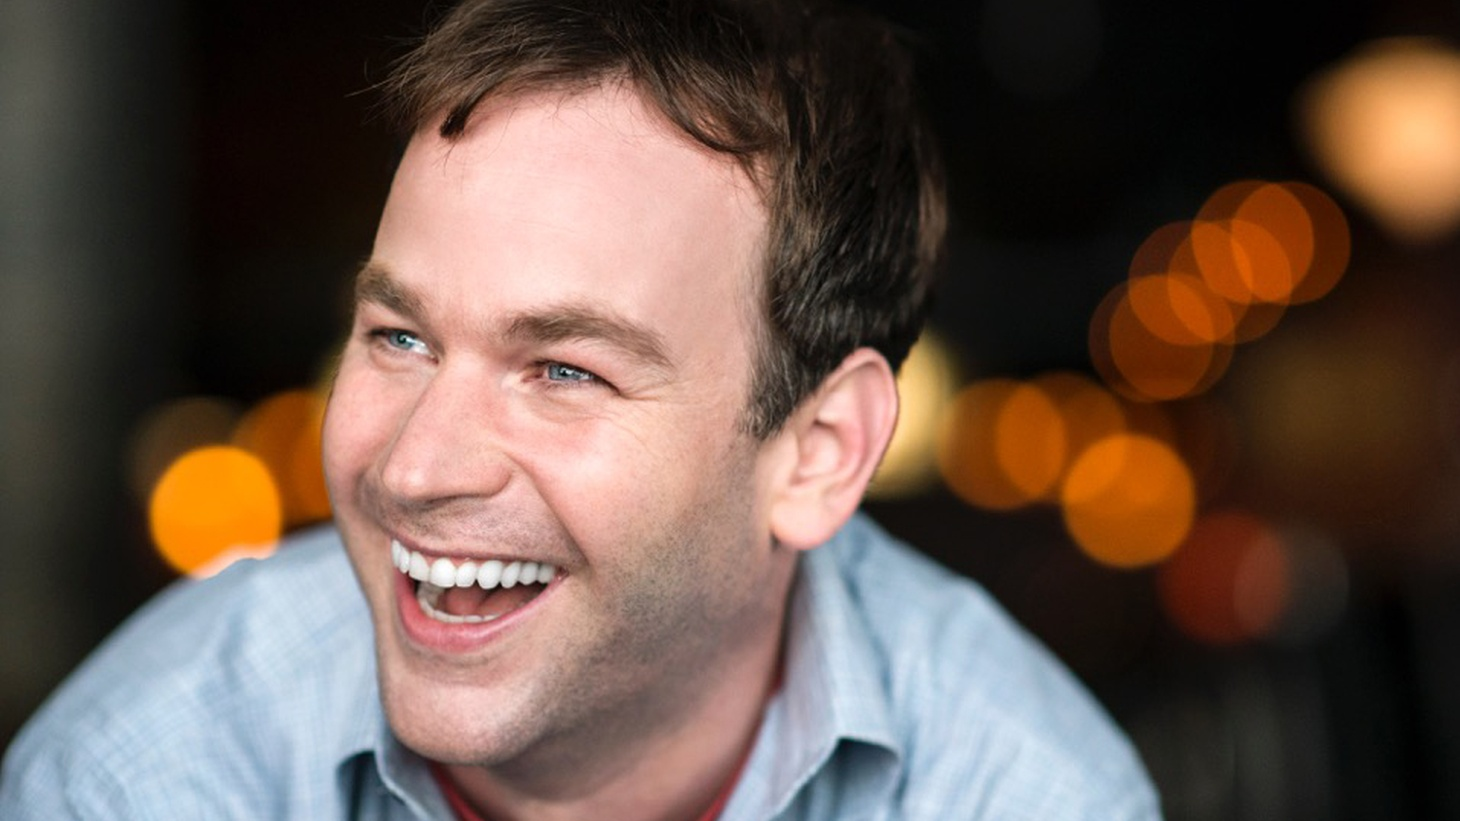 """Comedian Mike Birbiglia's new film Don't Think Twicefollows a close-knit improv group that starts to feel the strain when one of its members gets a big break on a hit TV show. Birbiglia tells us what improv and directing have in common, and how he's set out to """"hand-deliver"""" his film to theaters."""